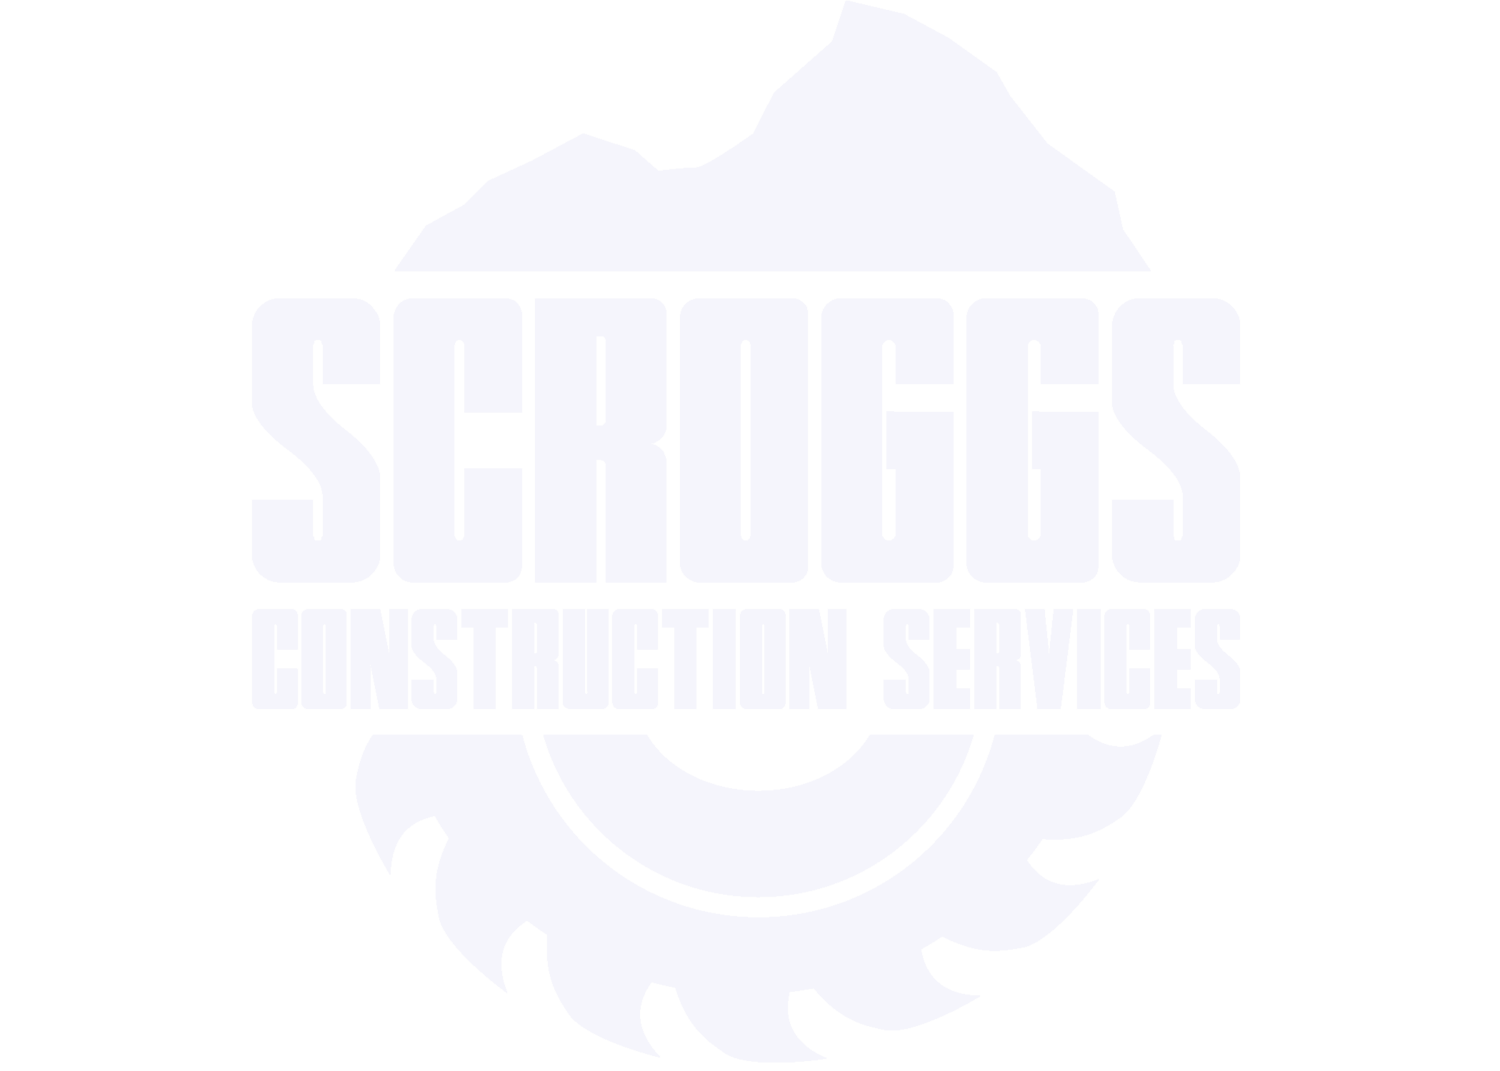 Scroggs Construction Services